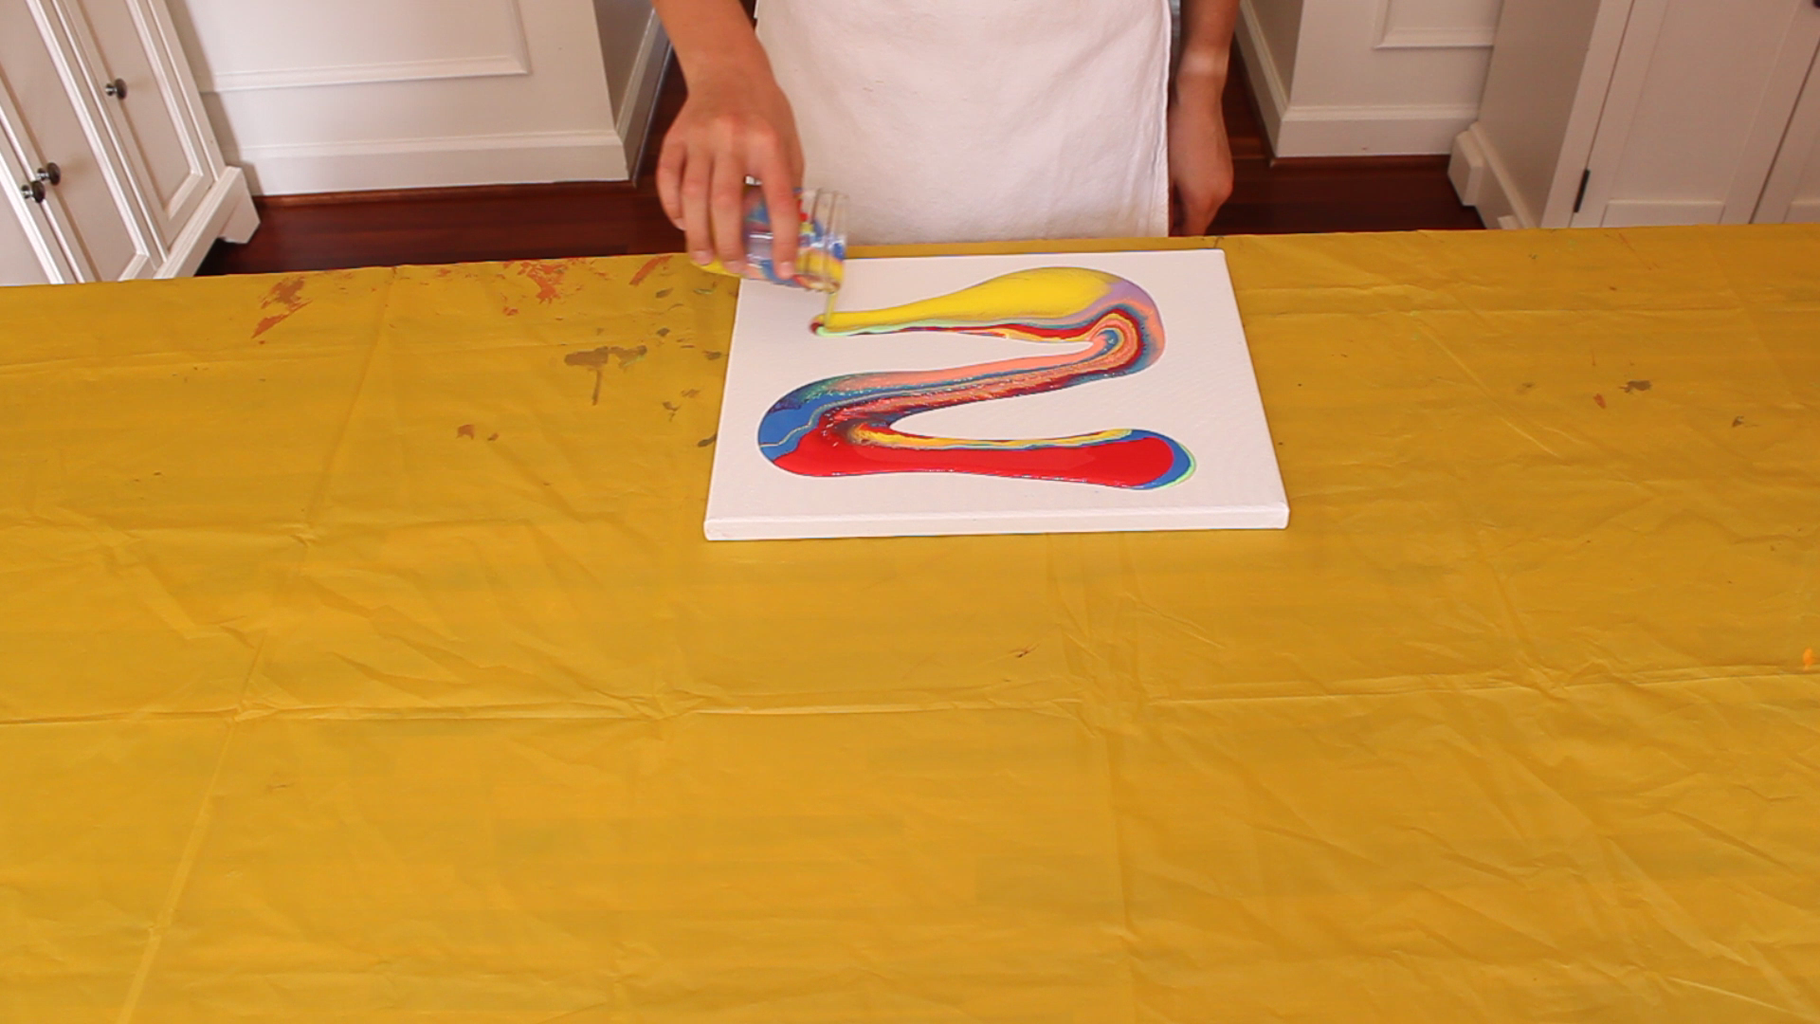 Pouring the Paint on the Canvas